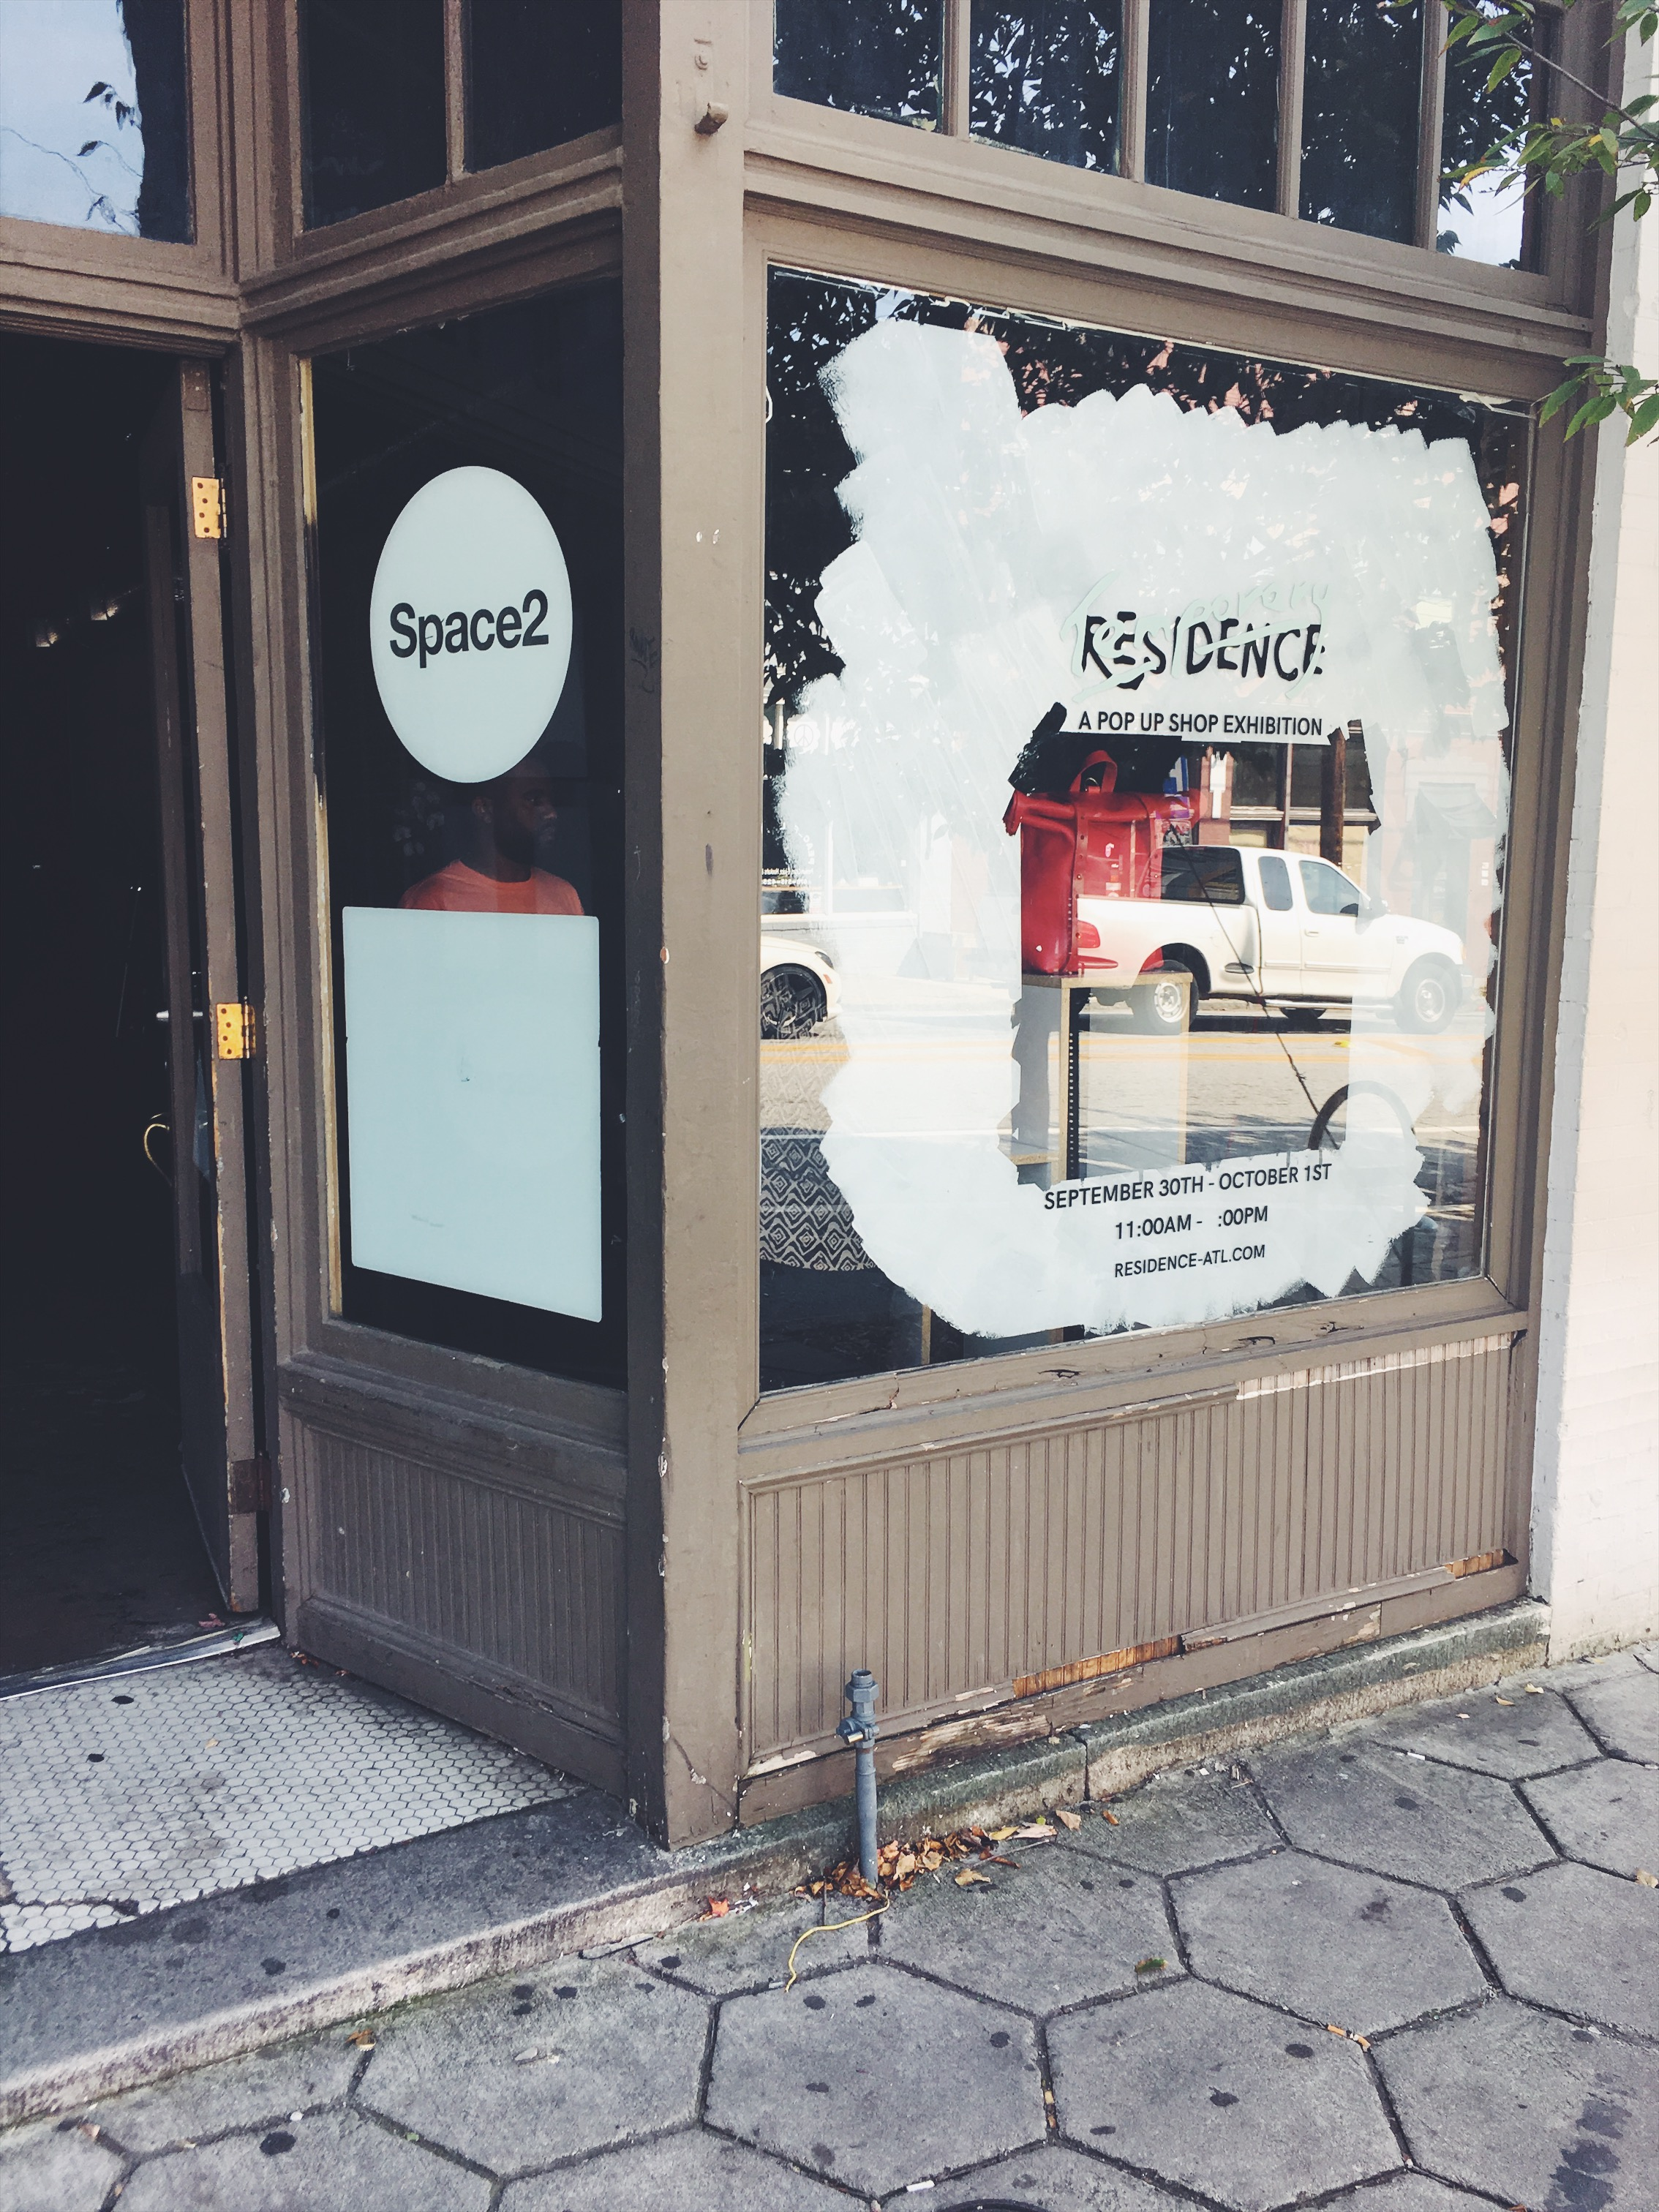 Storefront on Edgewood Ave in ATL